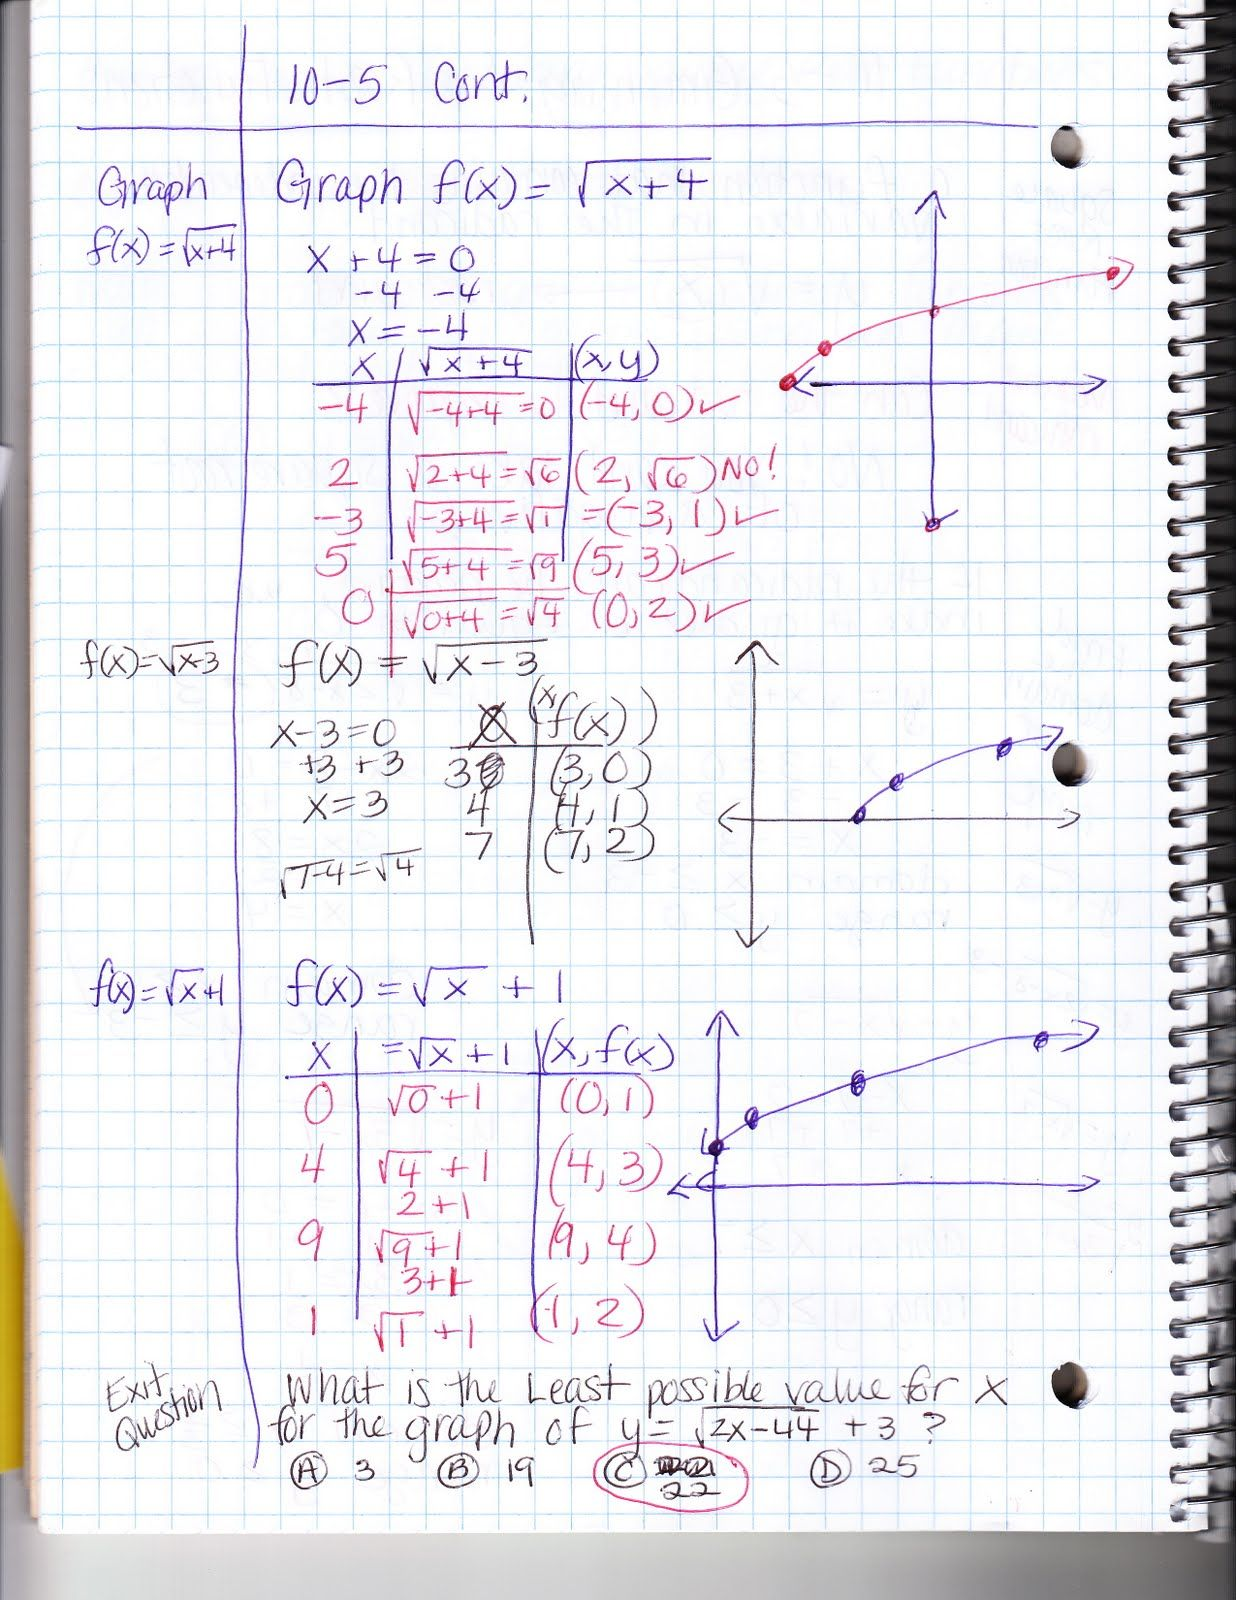 Ms Jean S Classroom Blog 10 5 Graphing Square Root Functions Function Of Roots Quadratics Quadratic Functions